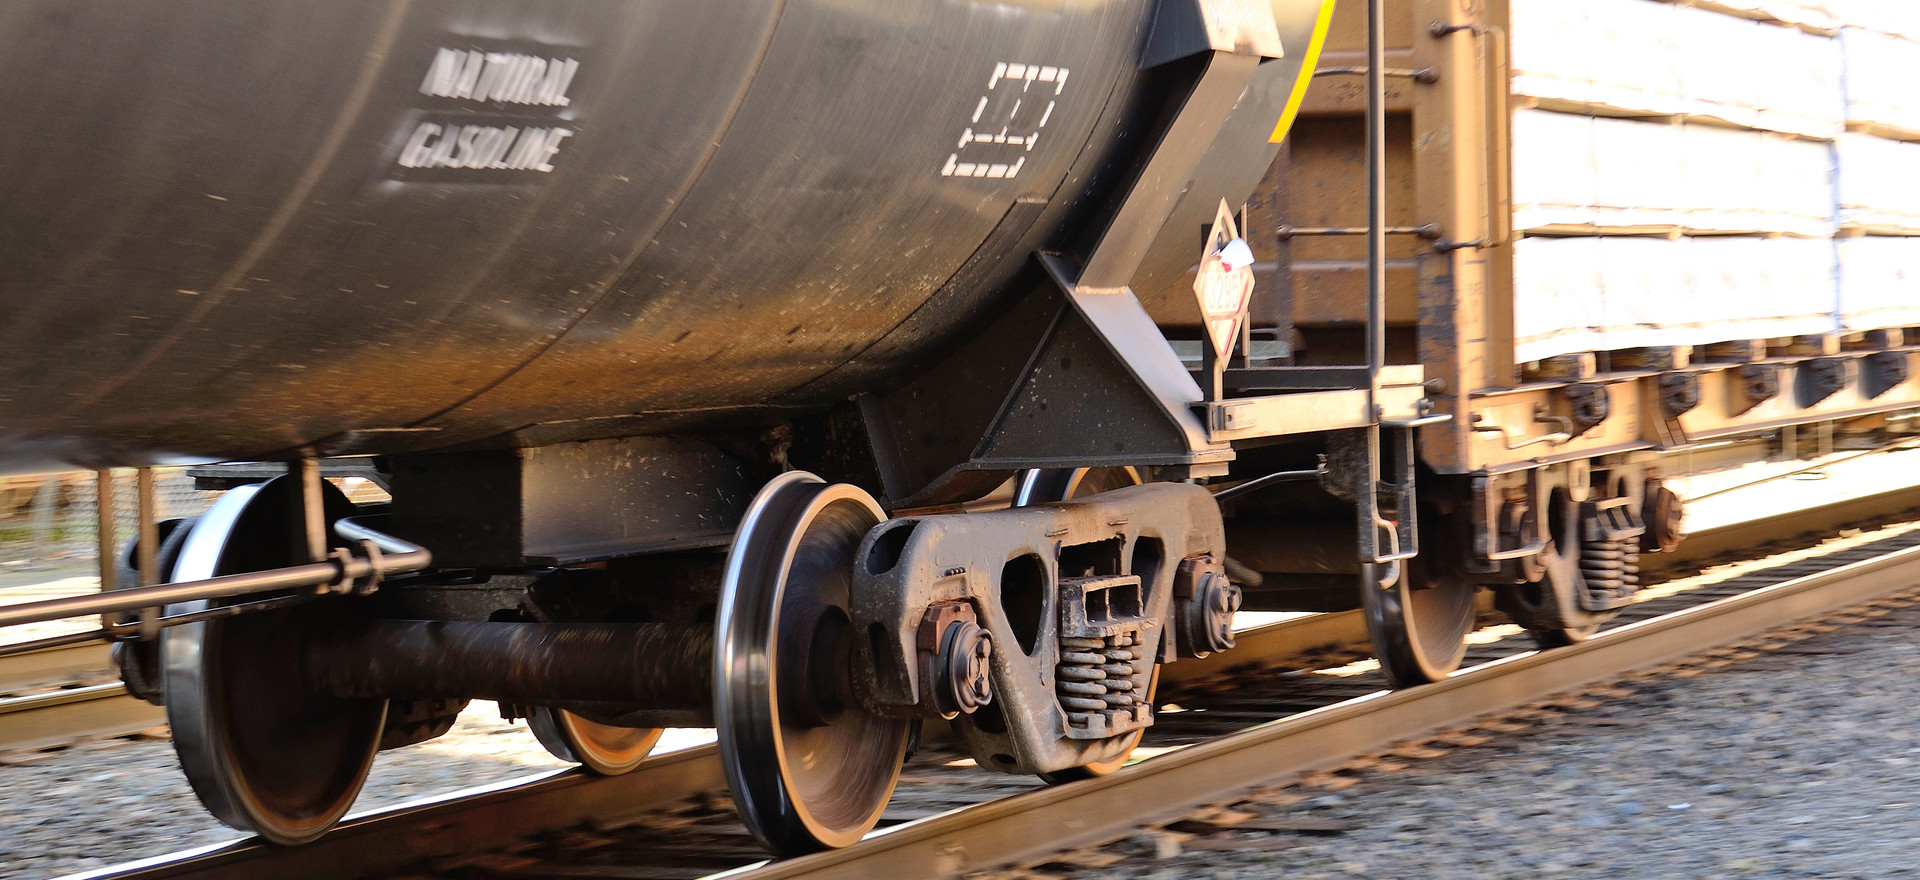 Freight Railcars